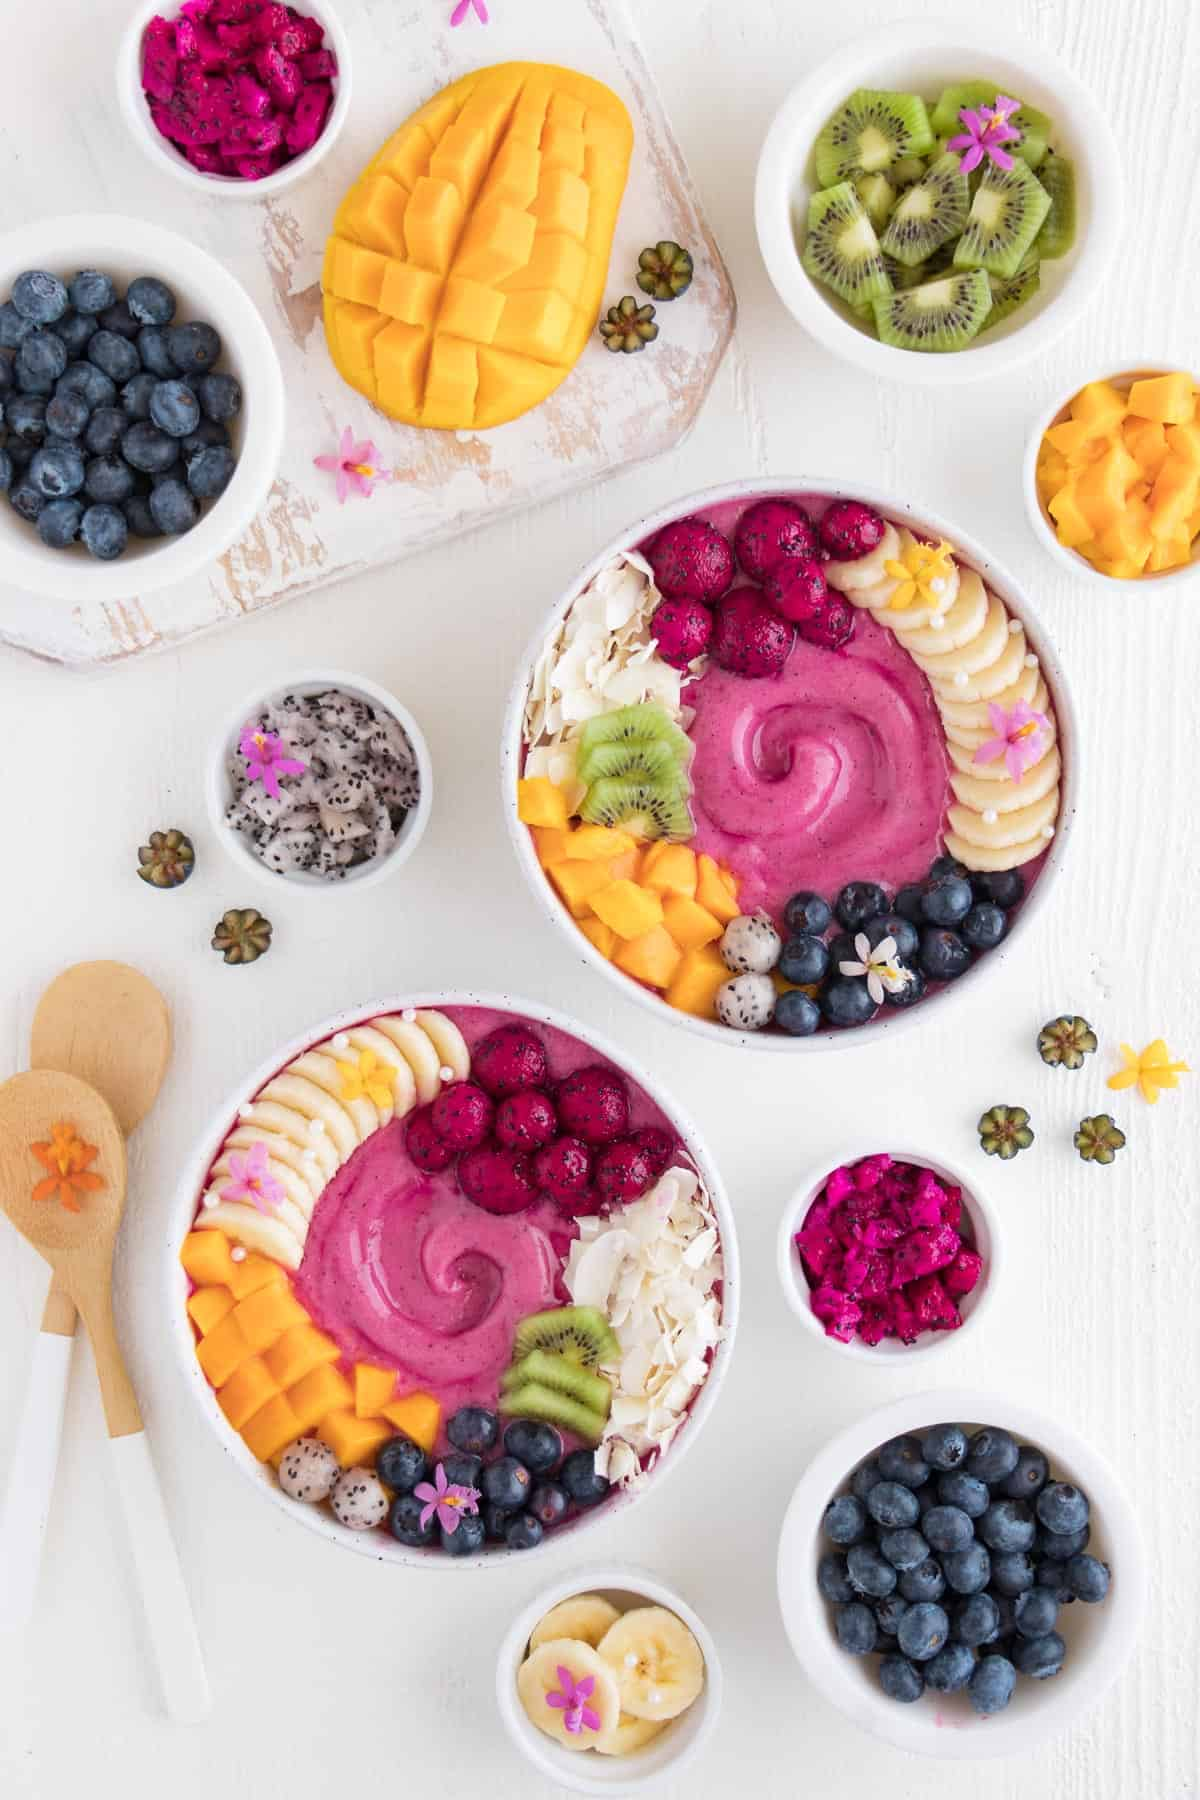 fruit platter with smoothie bowls